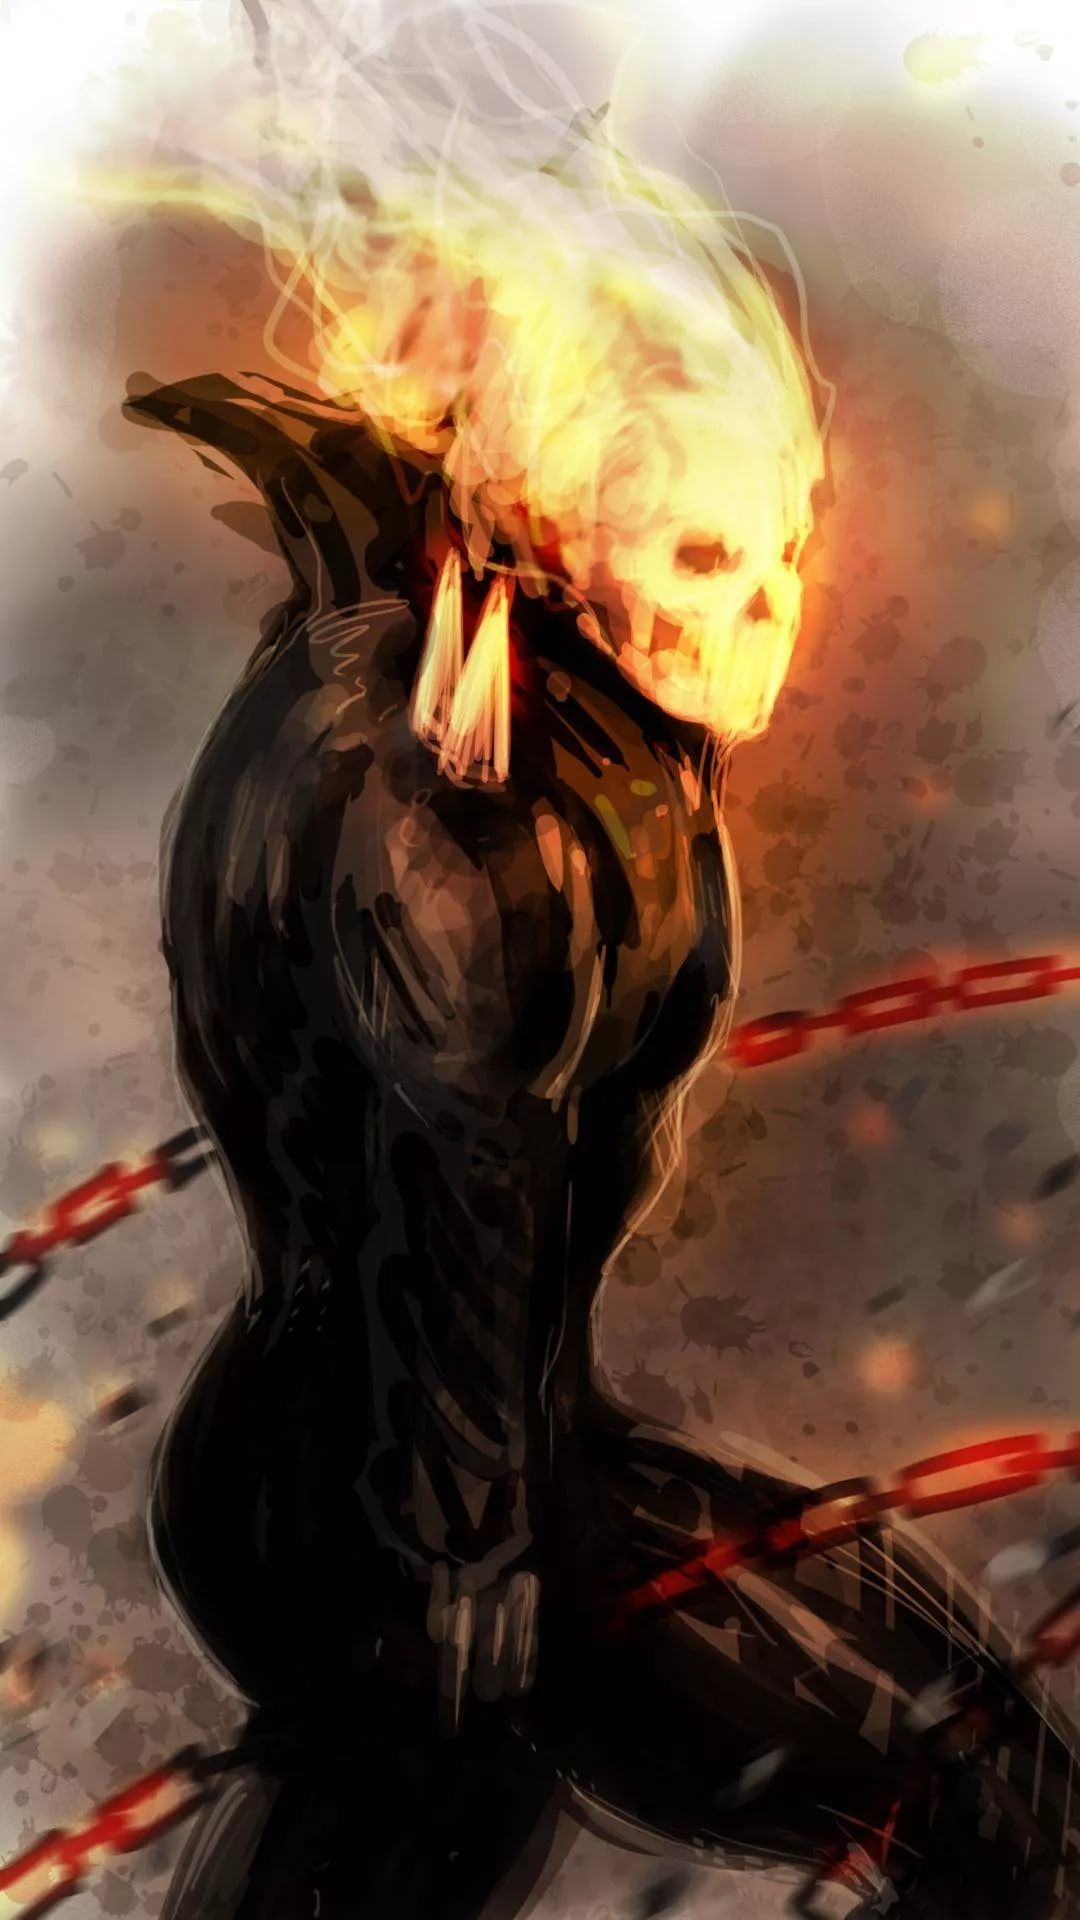 Ghost Rider wallpaper for my phone